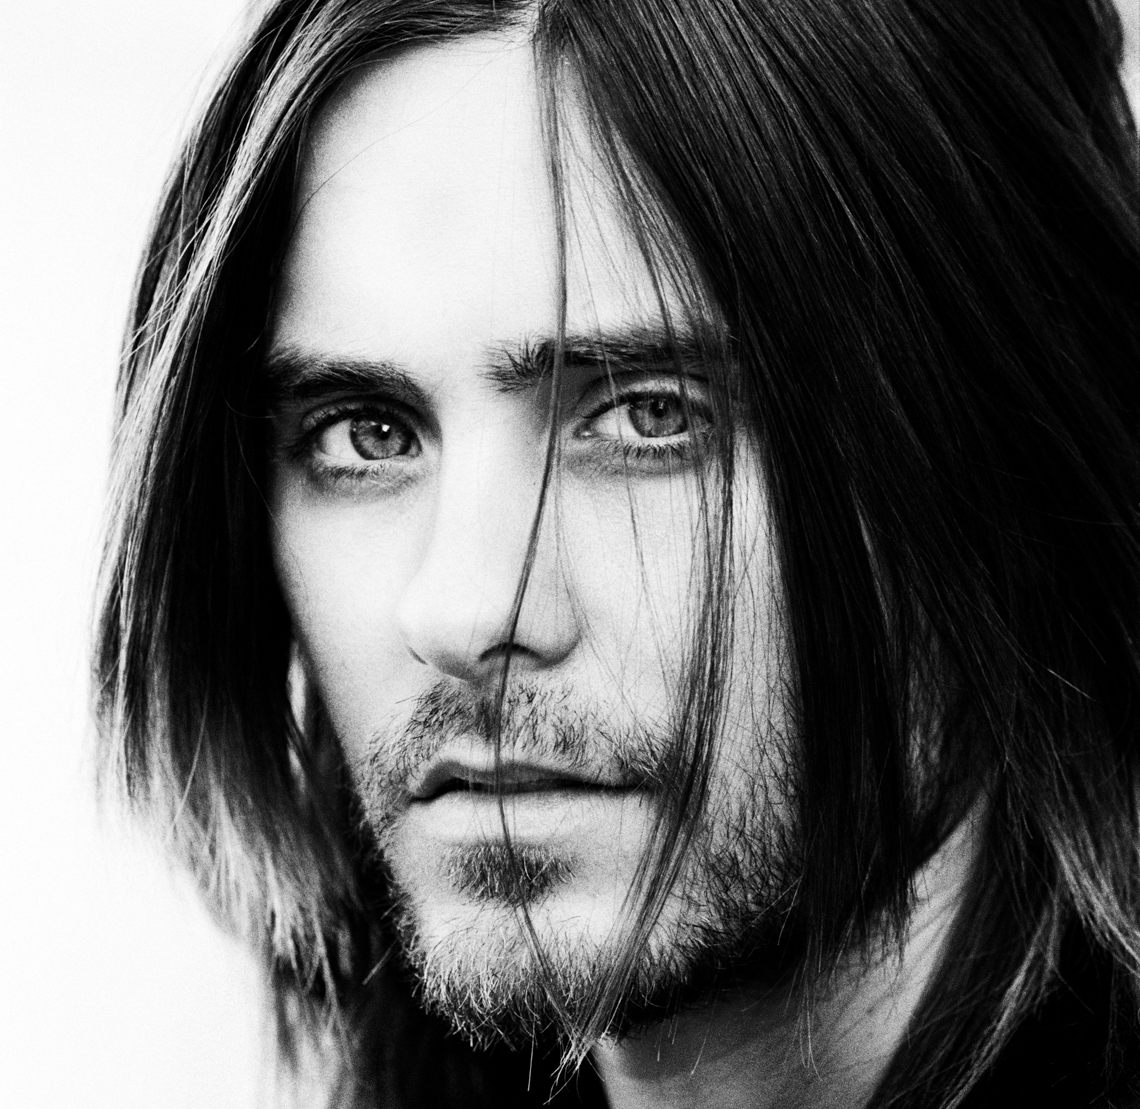 95.Jared_Leto_5Cropped_hr.tif